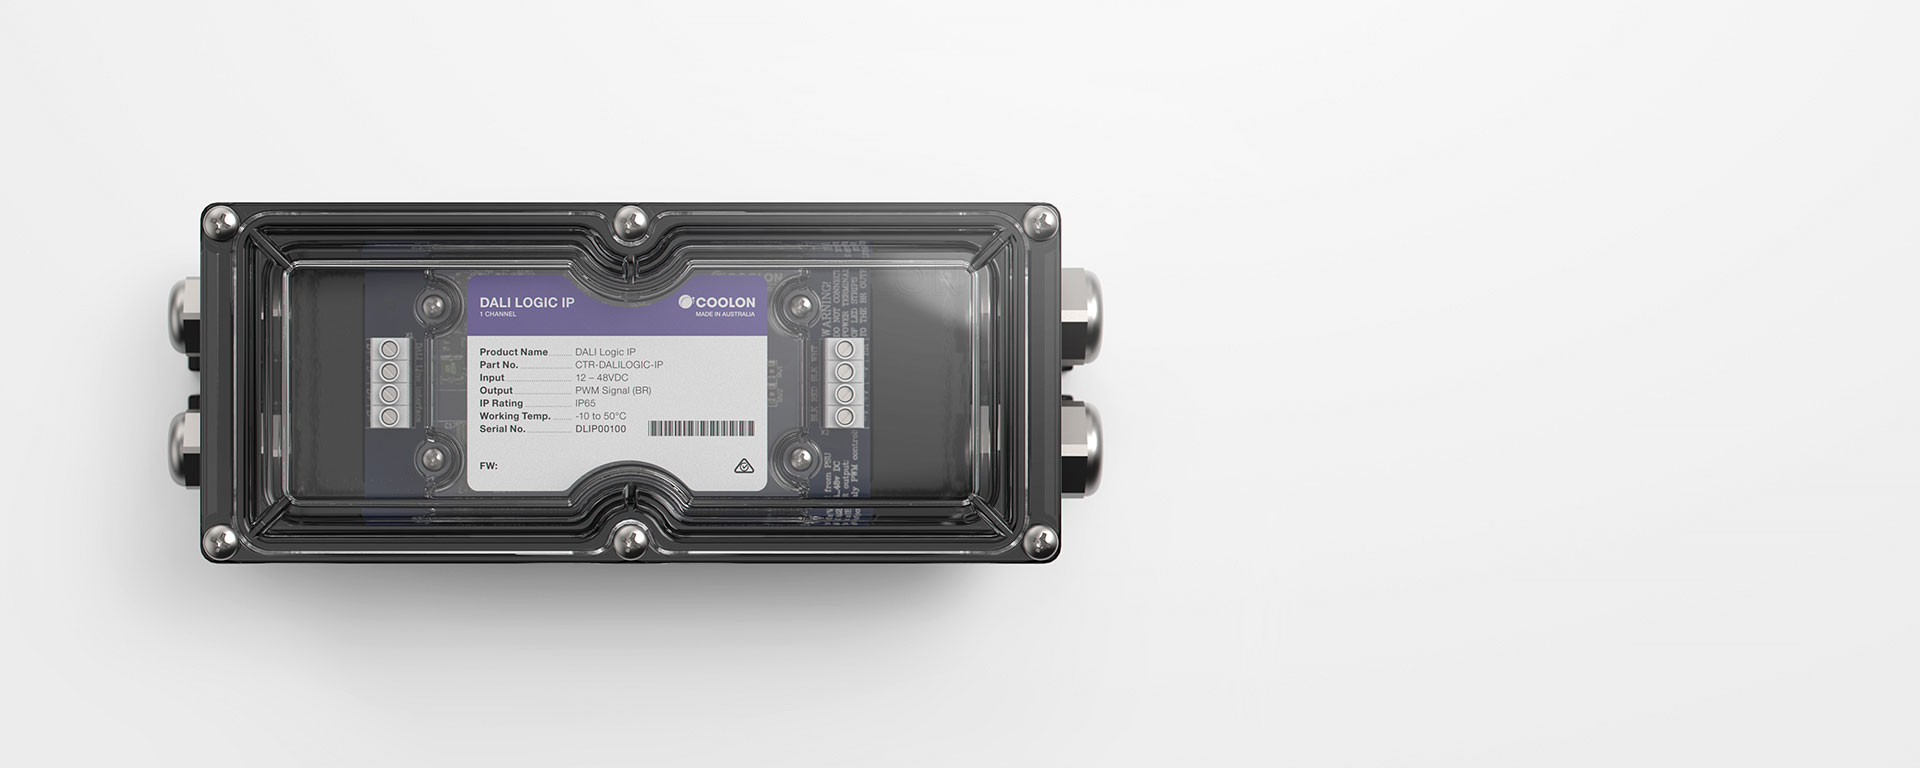 The DALI Logic IP driver is designed to suit outdoor DALI controlled LED installations, featuring a robust housing design, suitable for inclement weather.